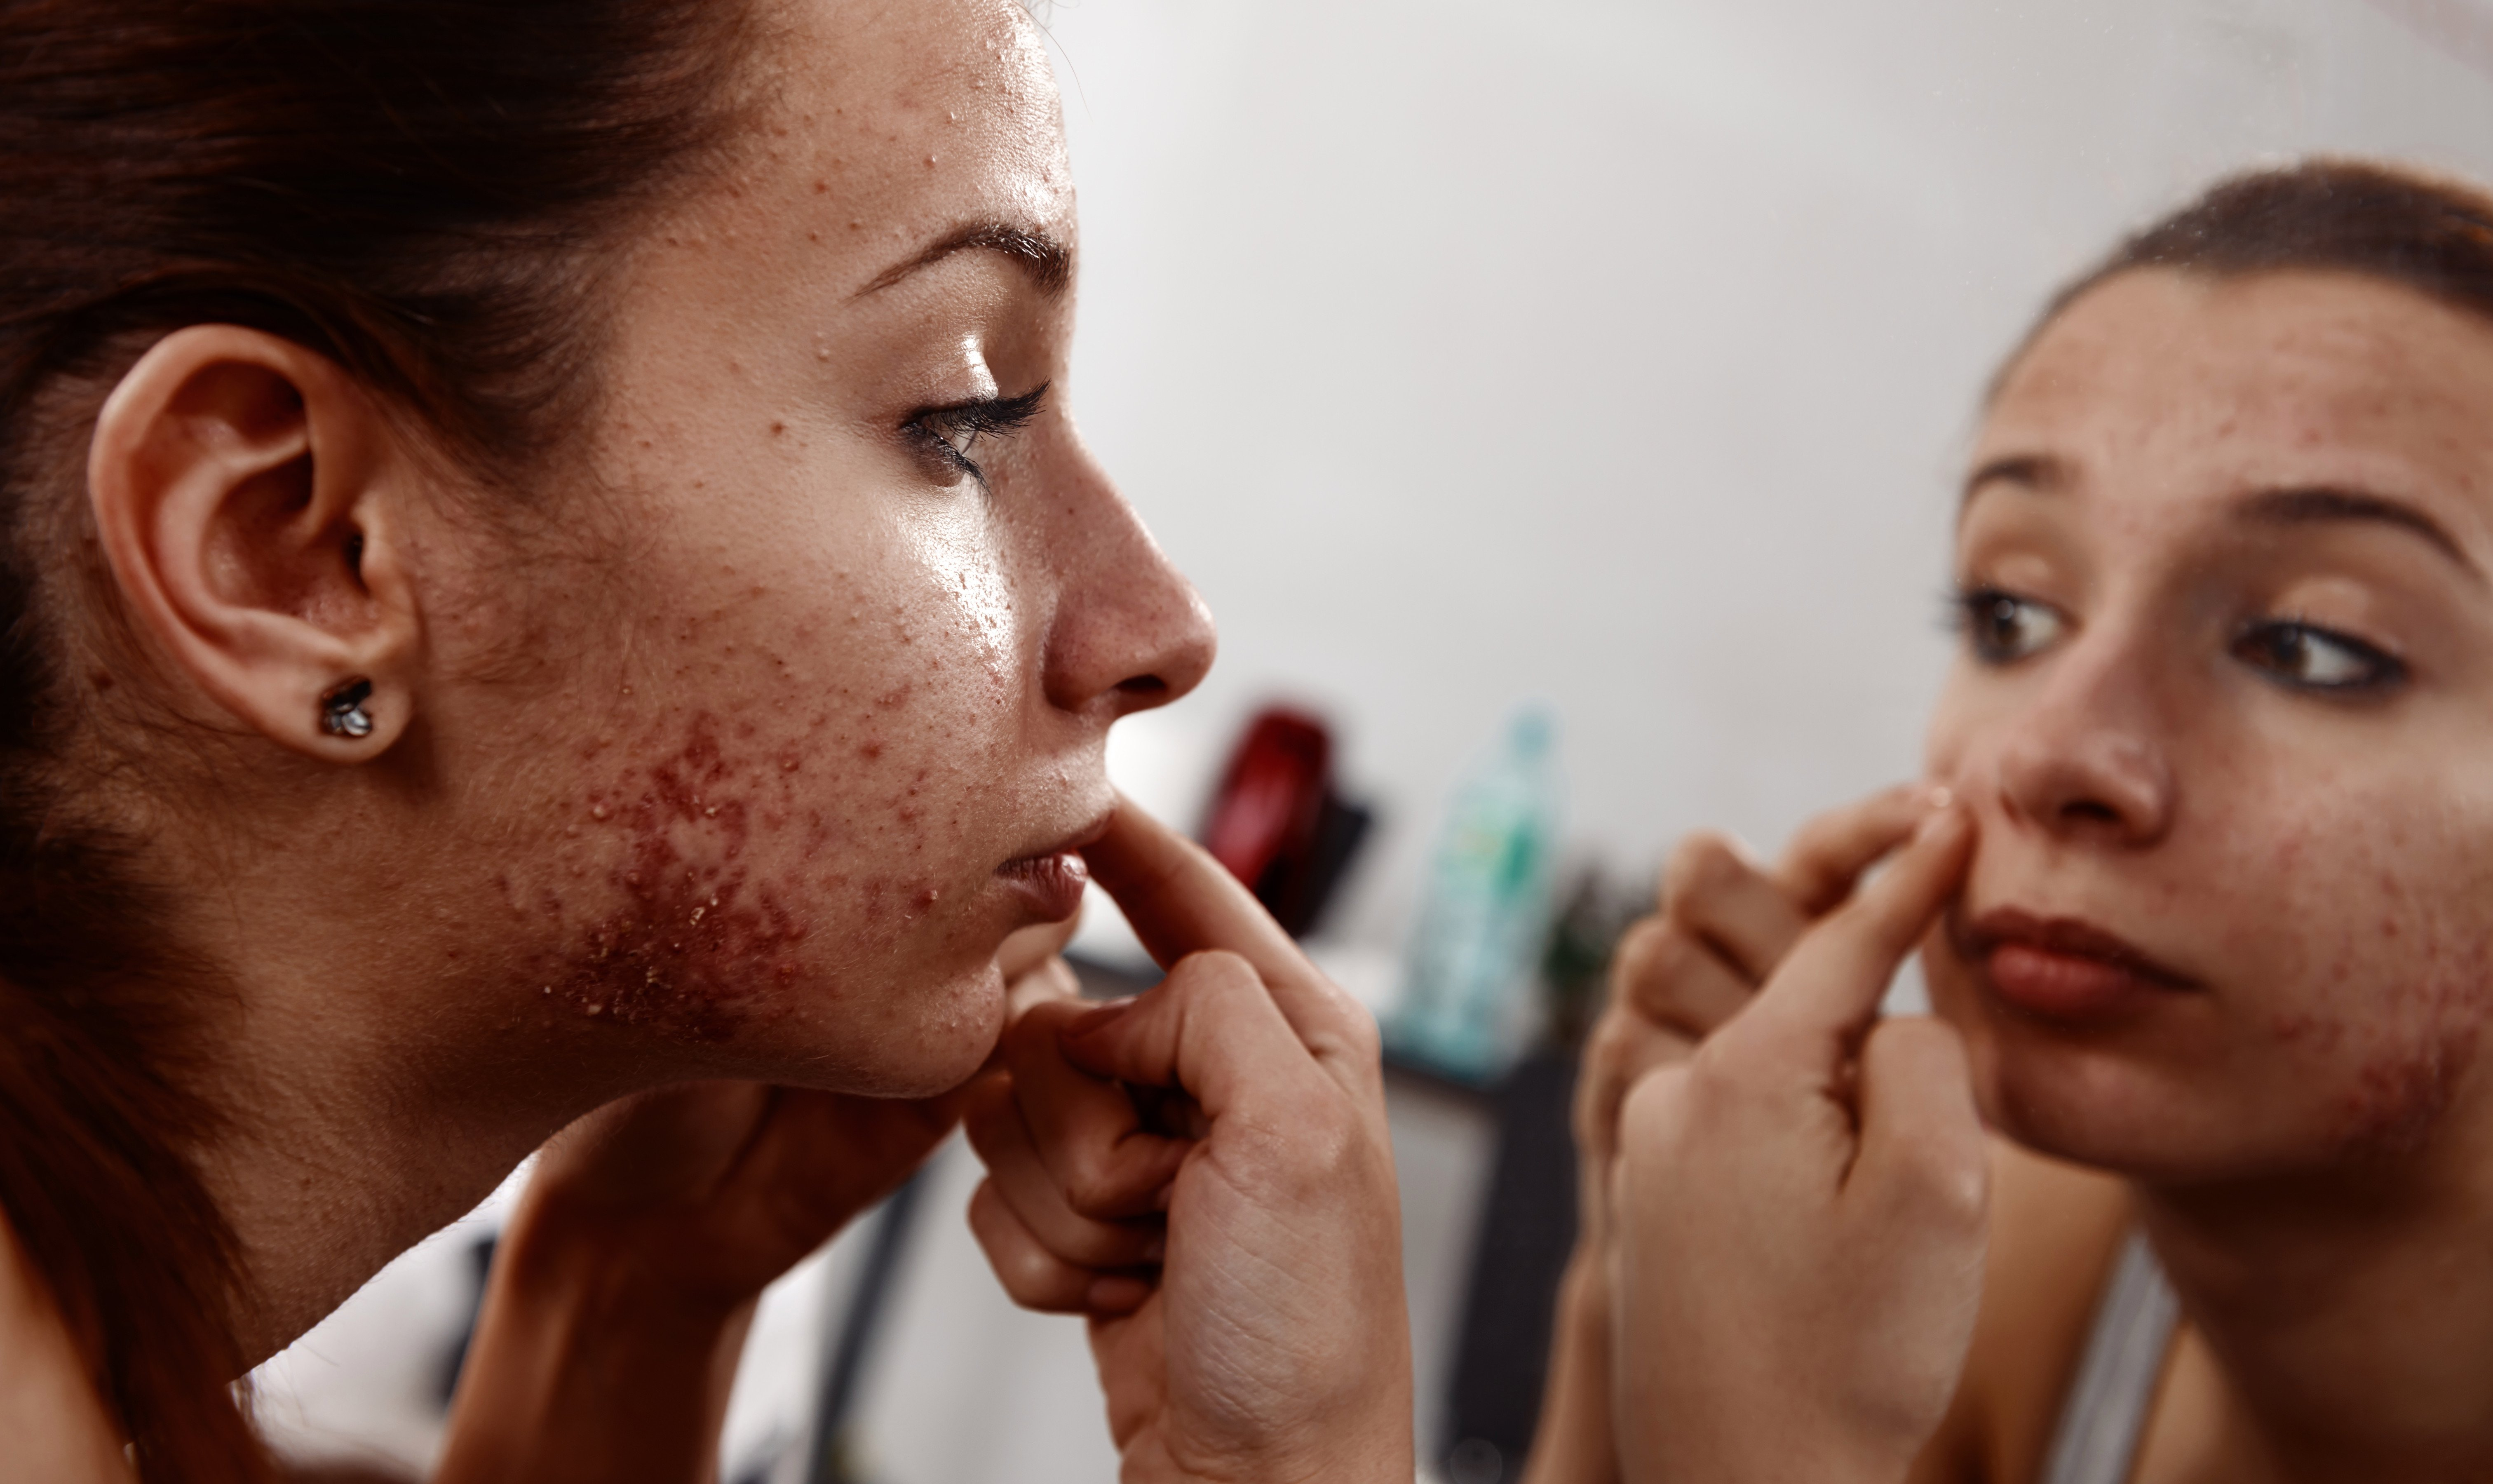 How can I get rid of adult acne? Seven of the best treatments to banish the blemishes